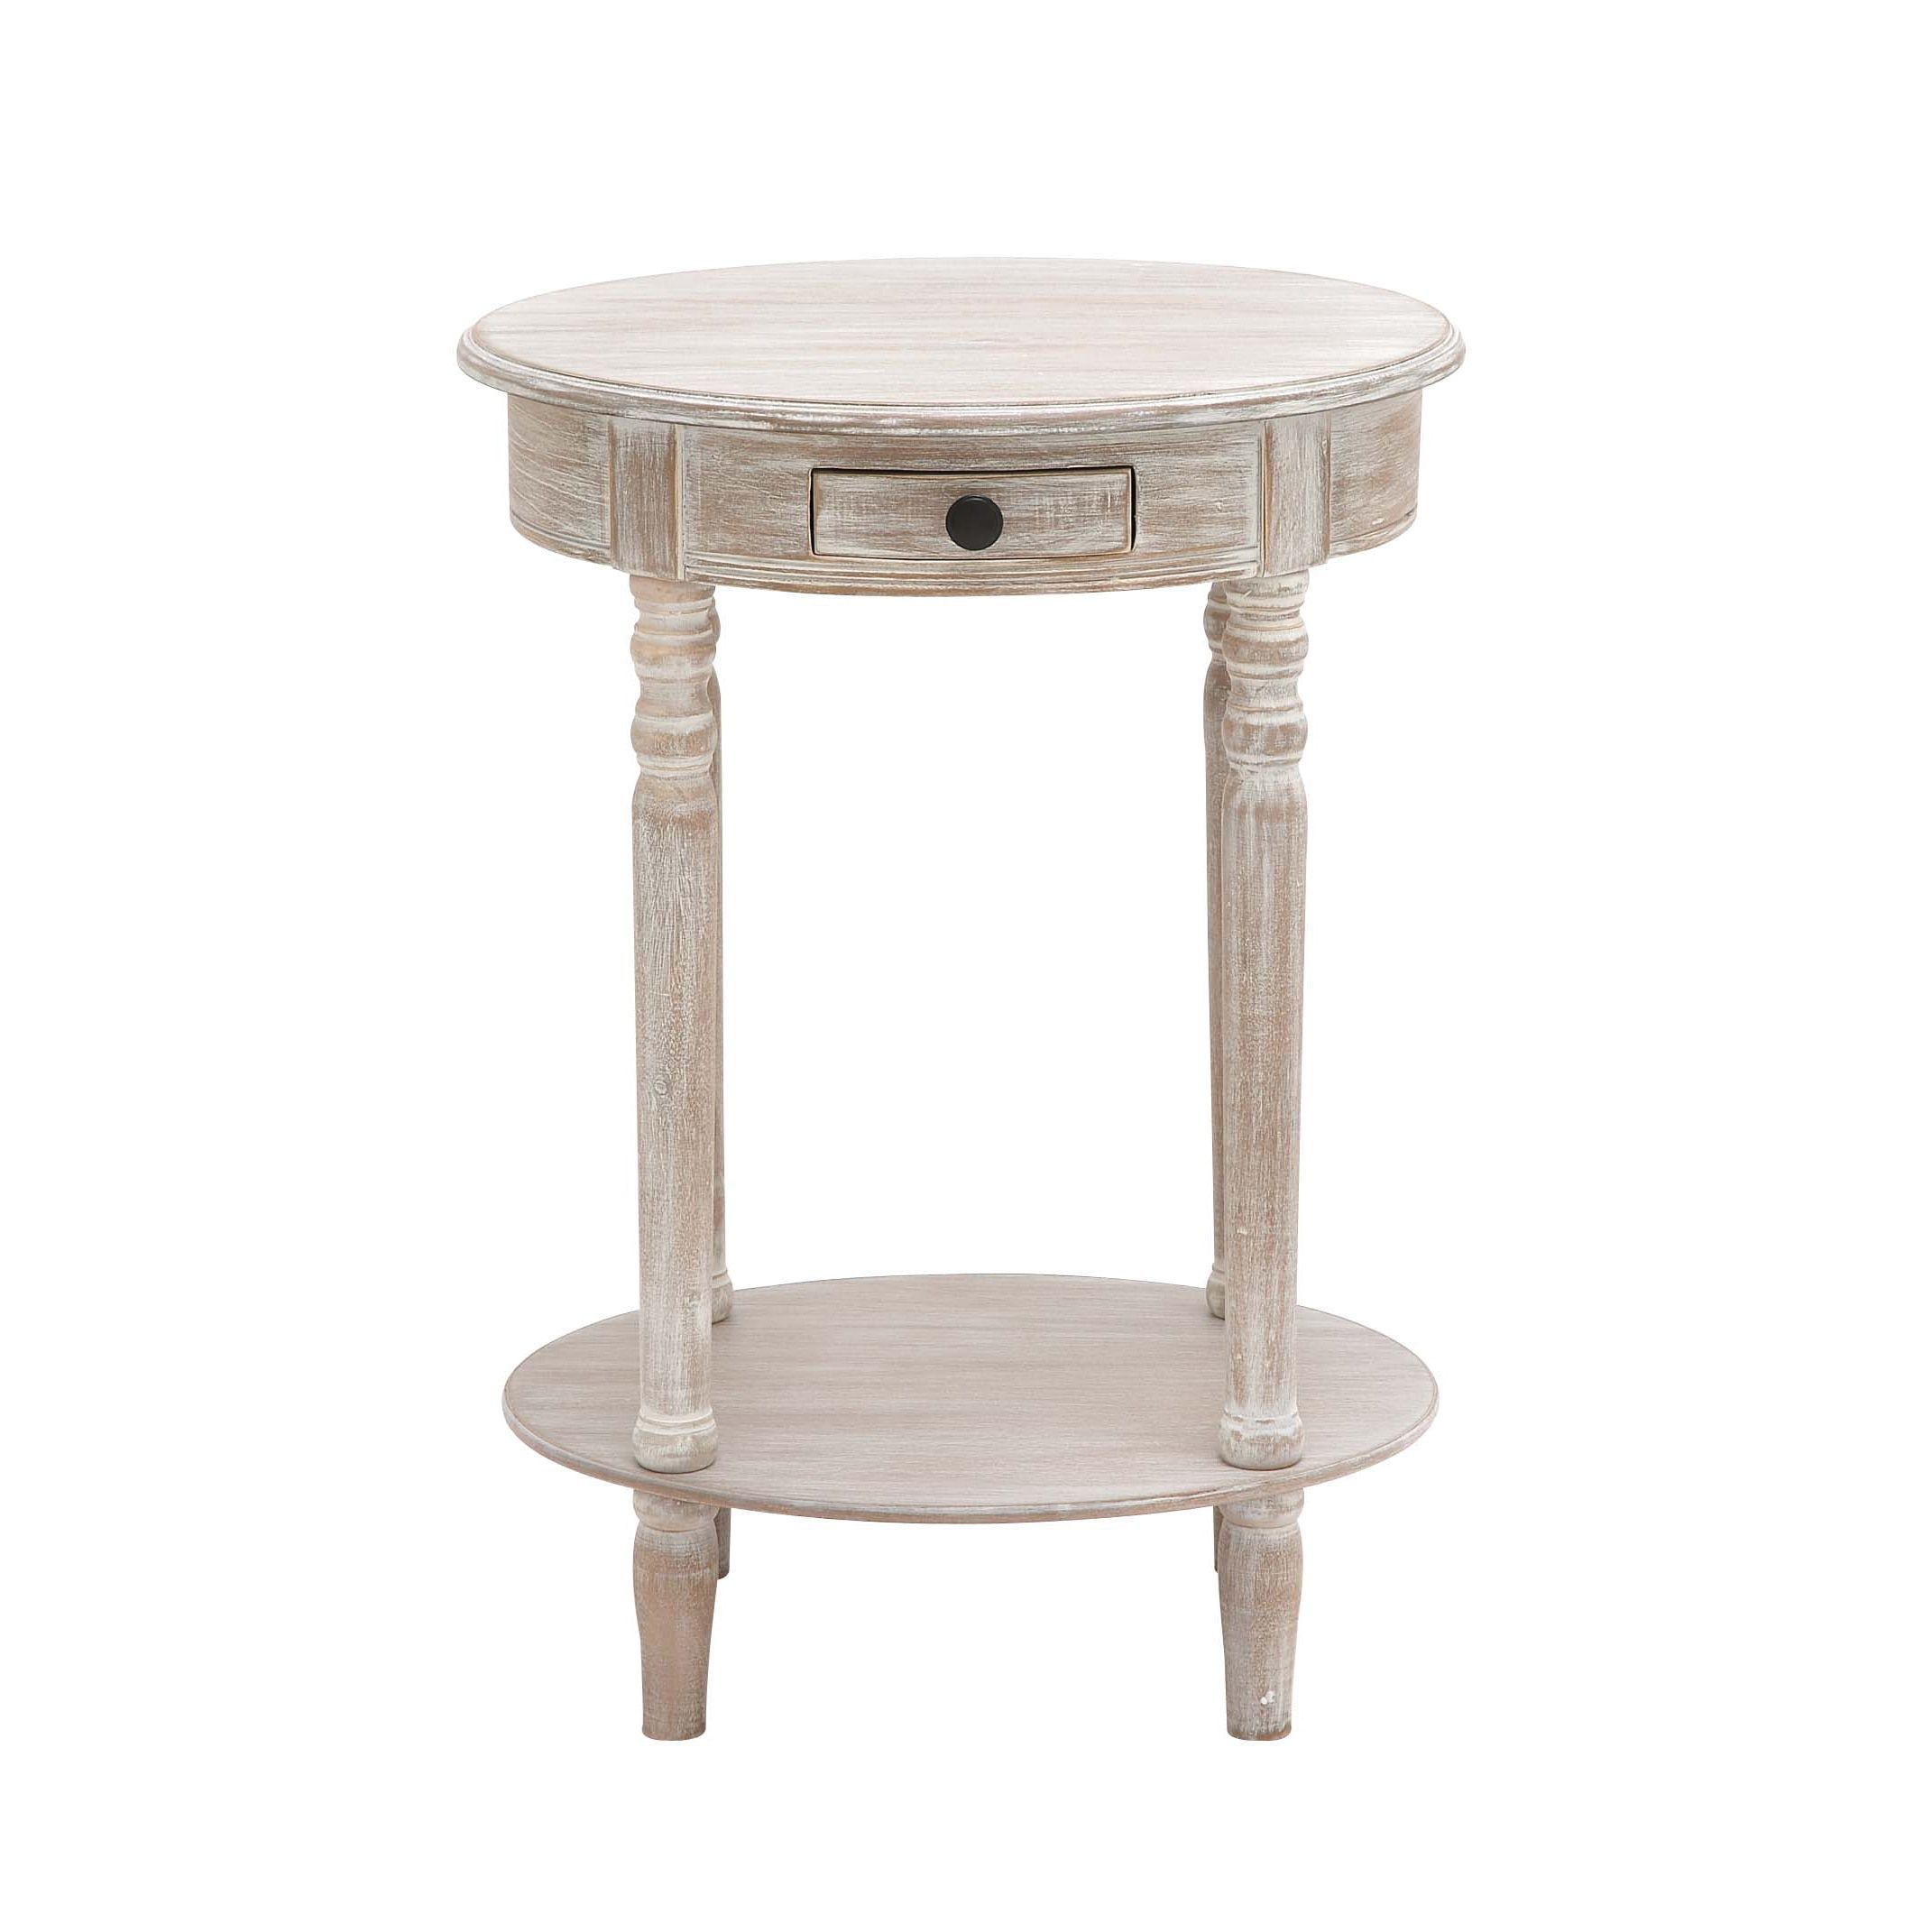 gorgeous distressed white round accent table pliva tablecloths side plastic tablet chairs glass antique pill wood and dogs top methadone abuse for toppers threshold marble metal